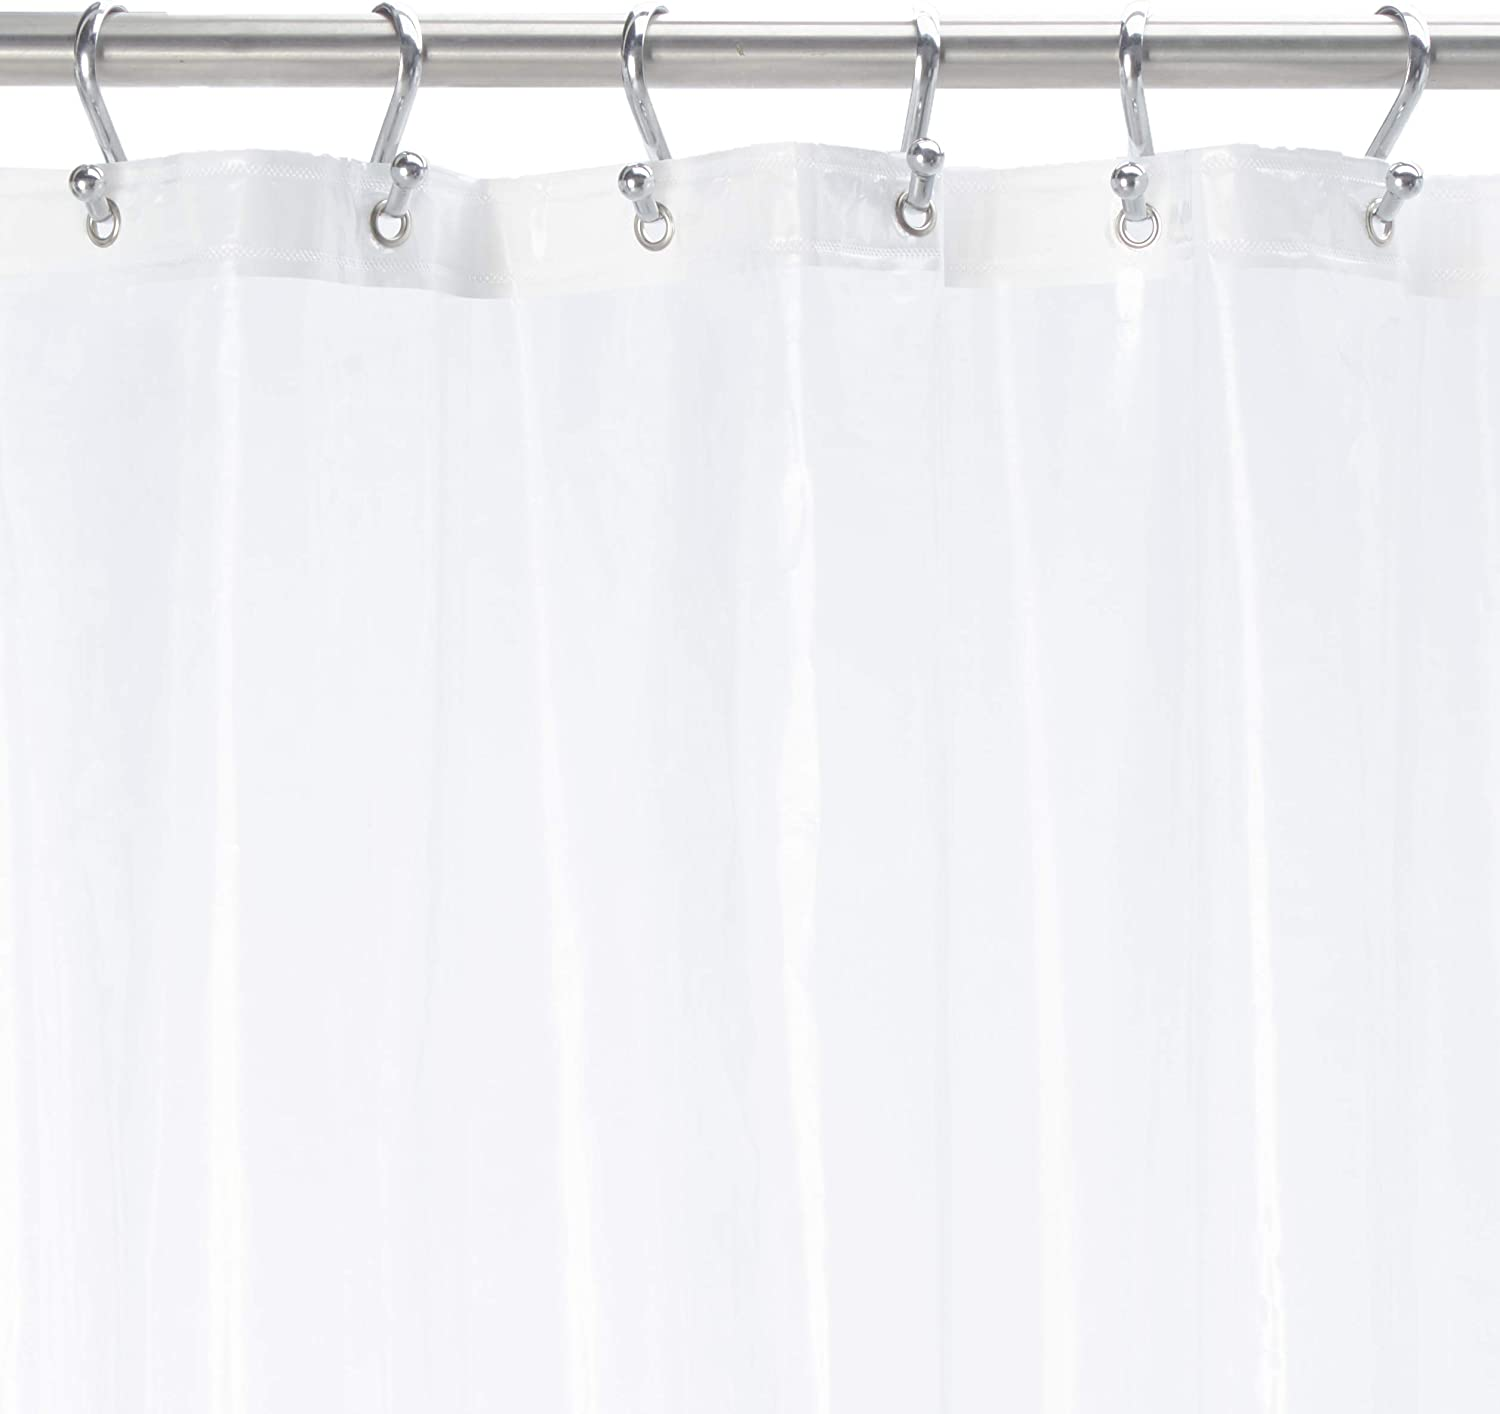 """Ben & Jonah Super Clear Extra Long and Heavy 10 Gauge PEVA Non-Toxic Shower Curtain Liner with Metal Grommets (72"""" x 84"""")"""